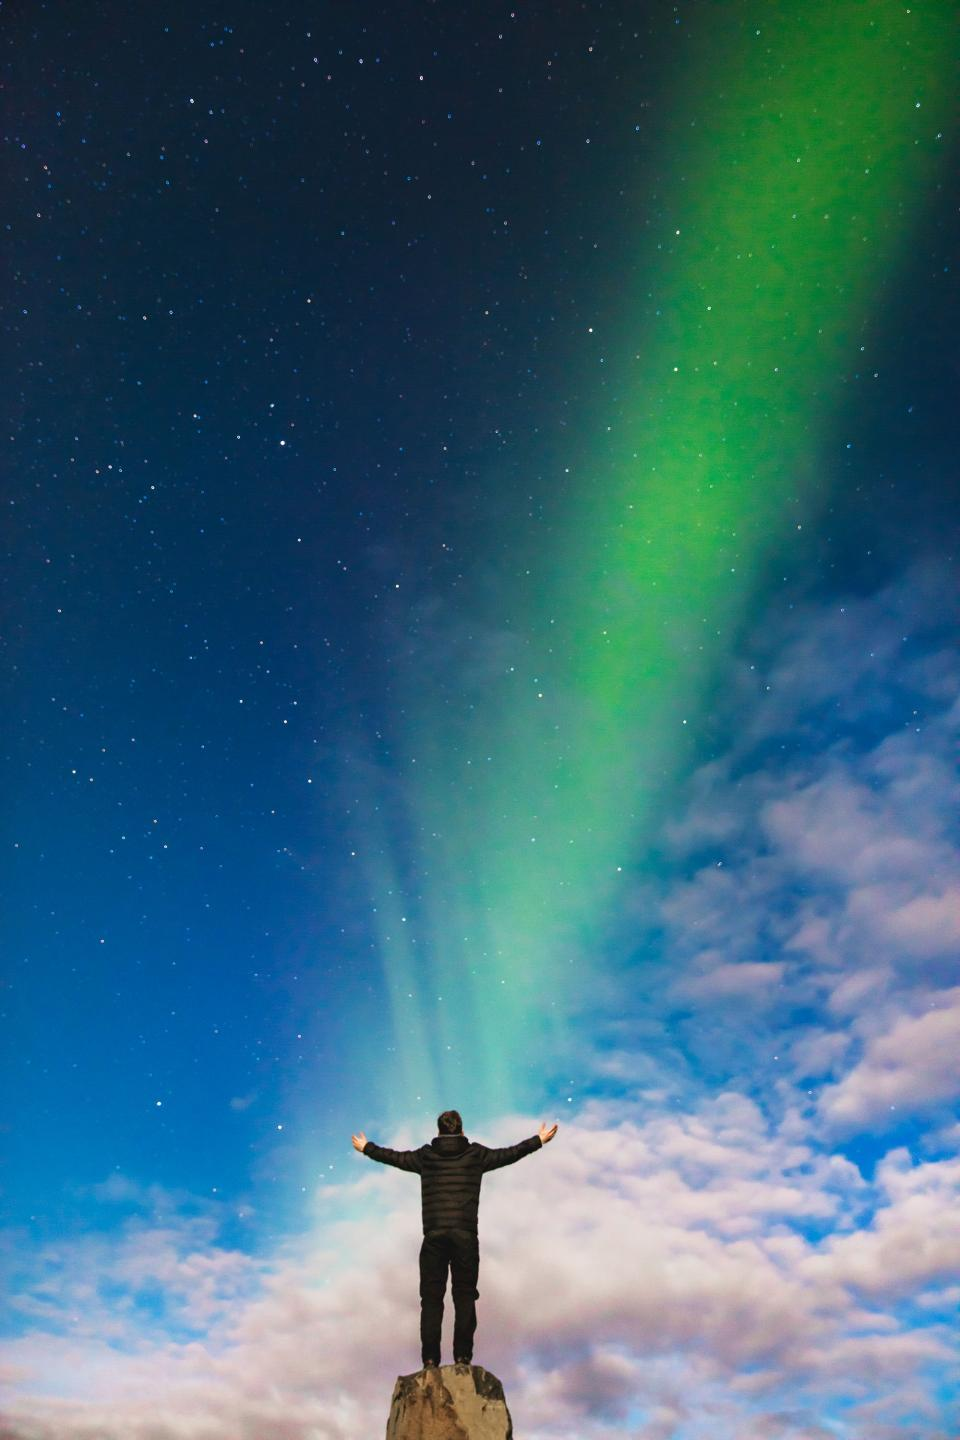 aurora, green, light, atmosphere, sky, stars, clouds, people, man, guy, alone, worship